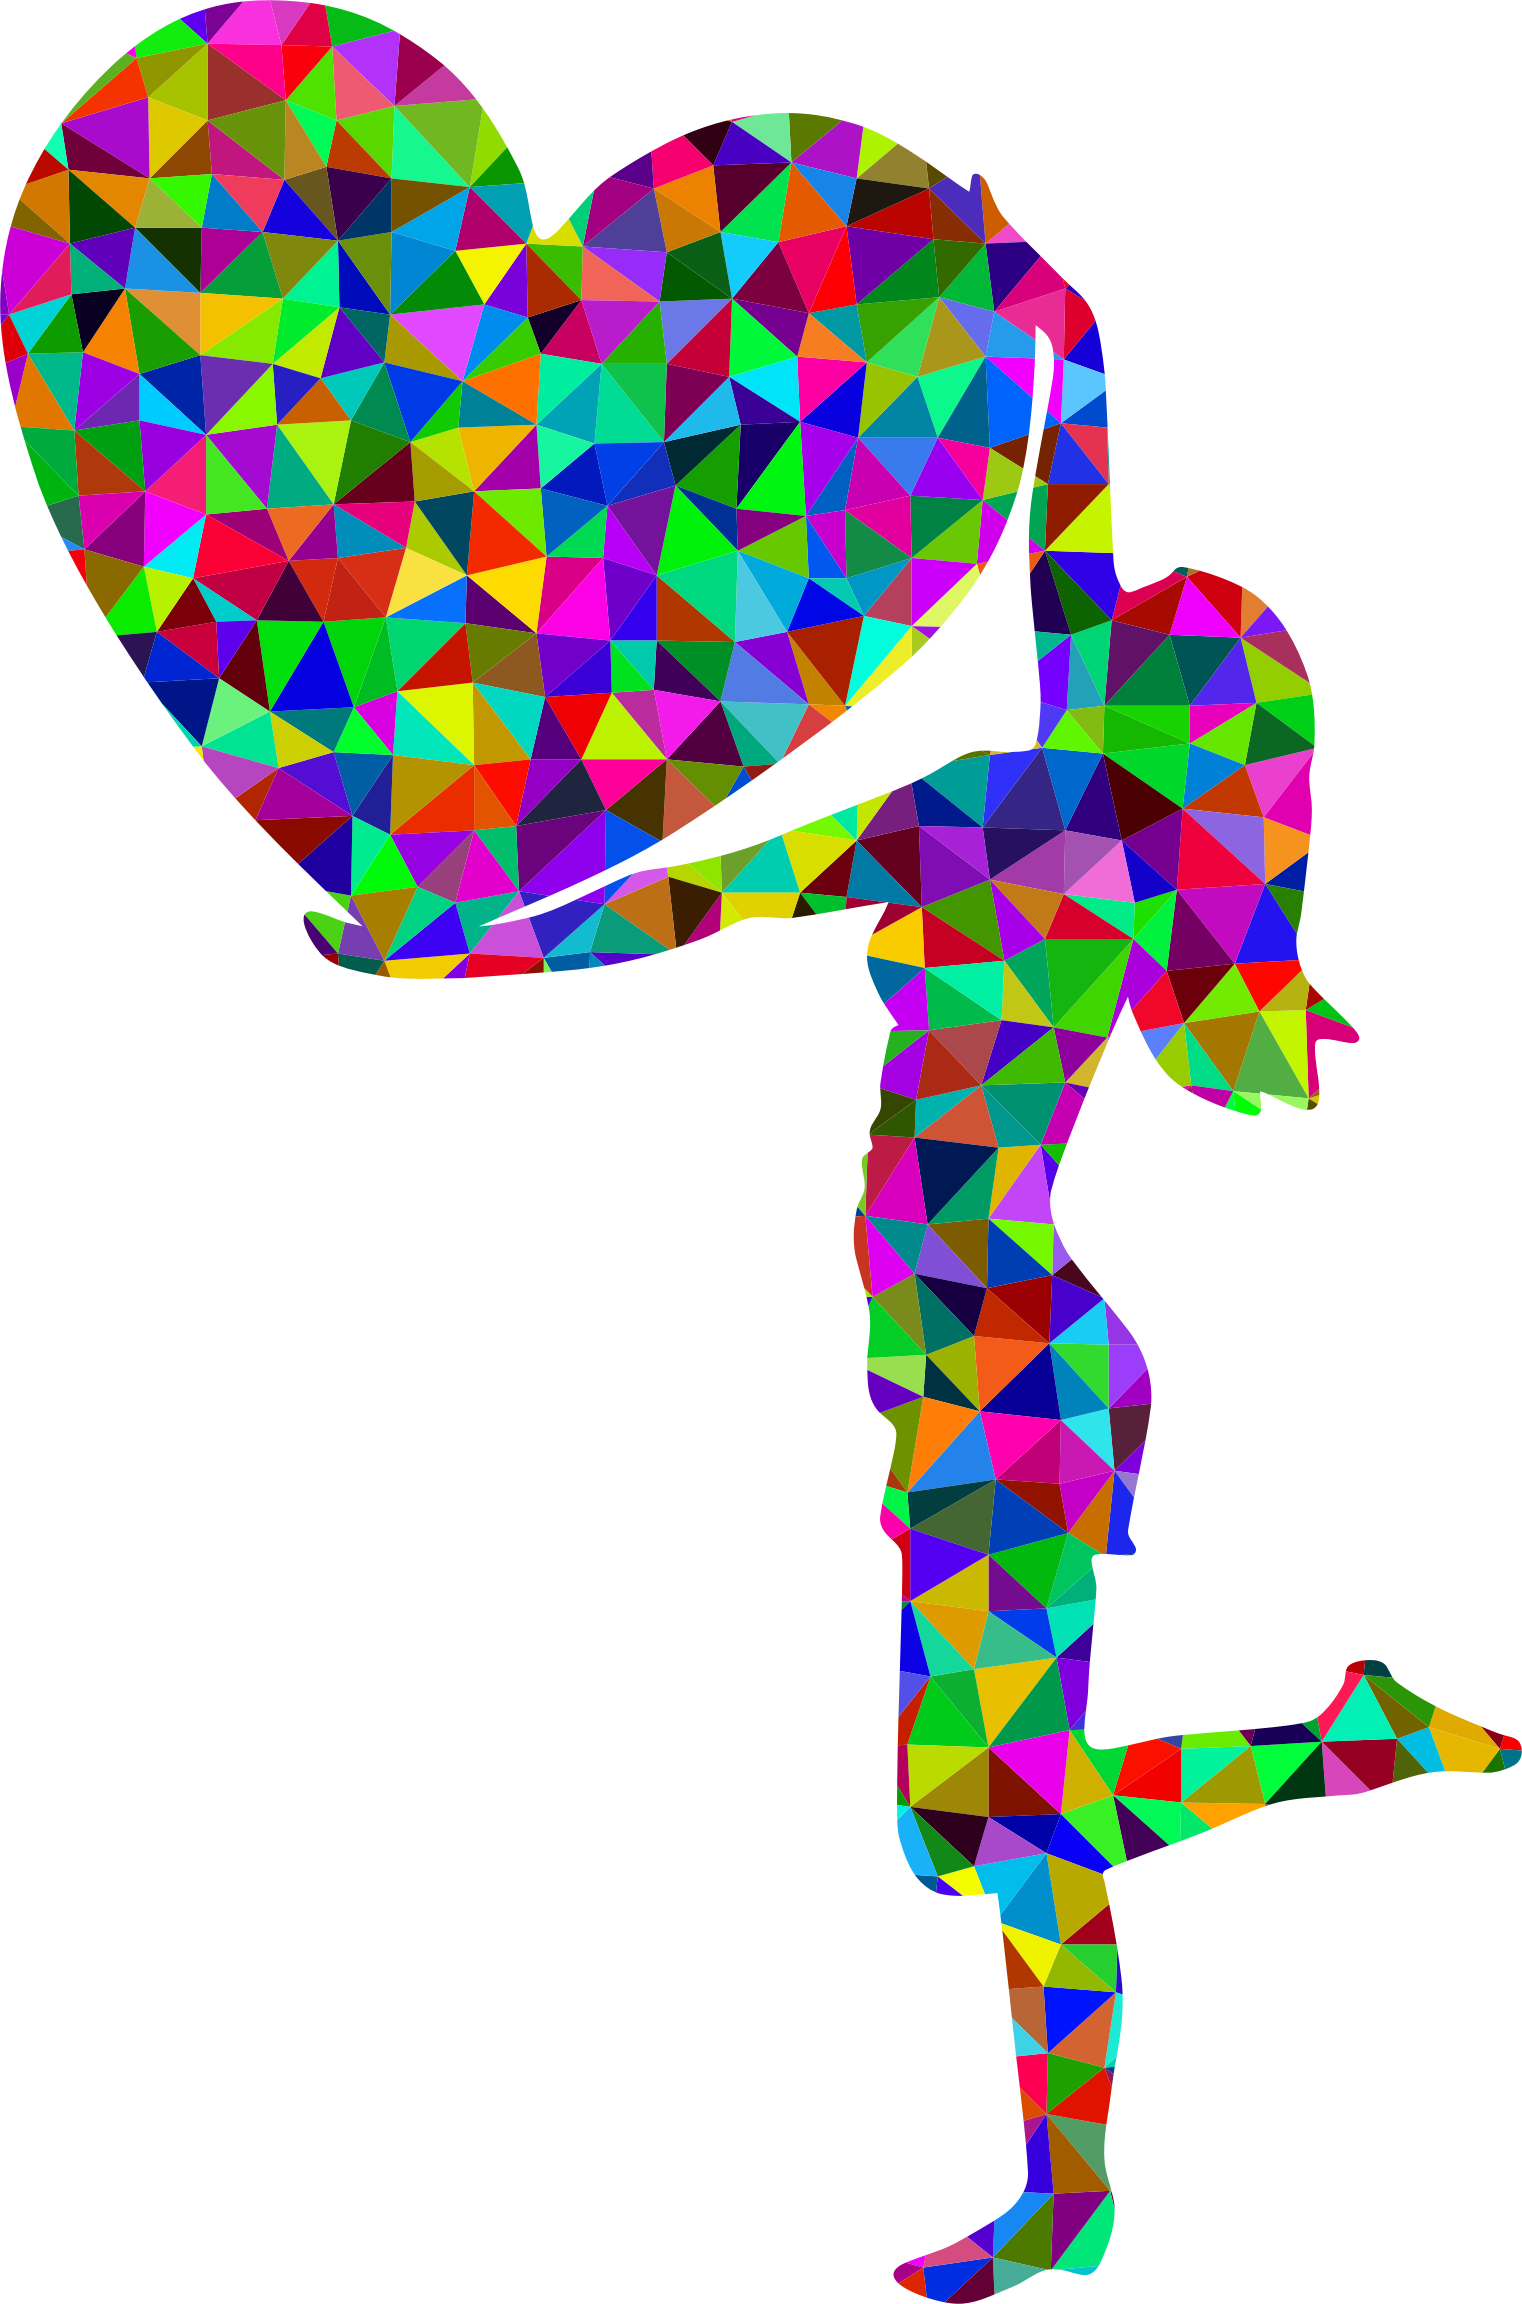 Prismatic Low Poly Woman With Big Heart by GDJ